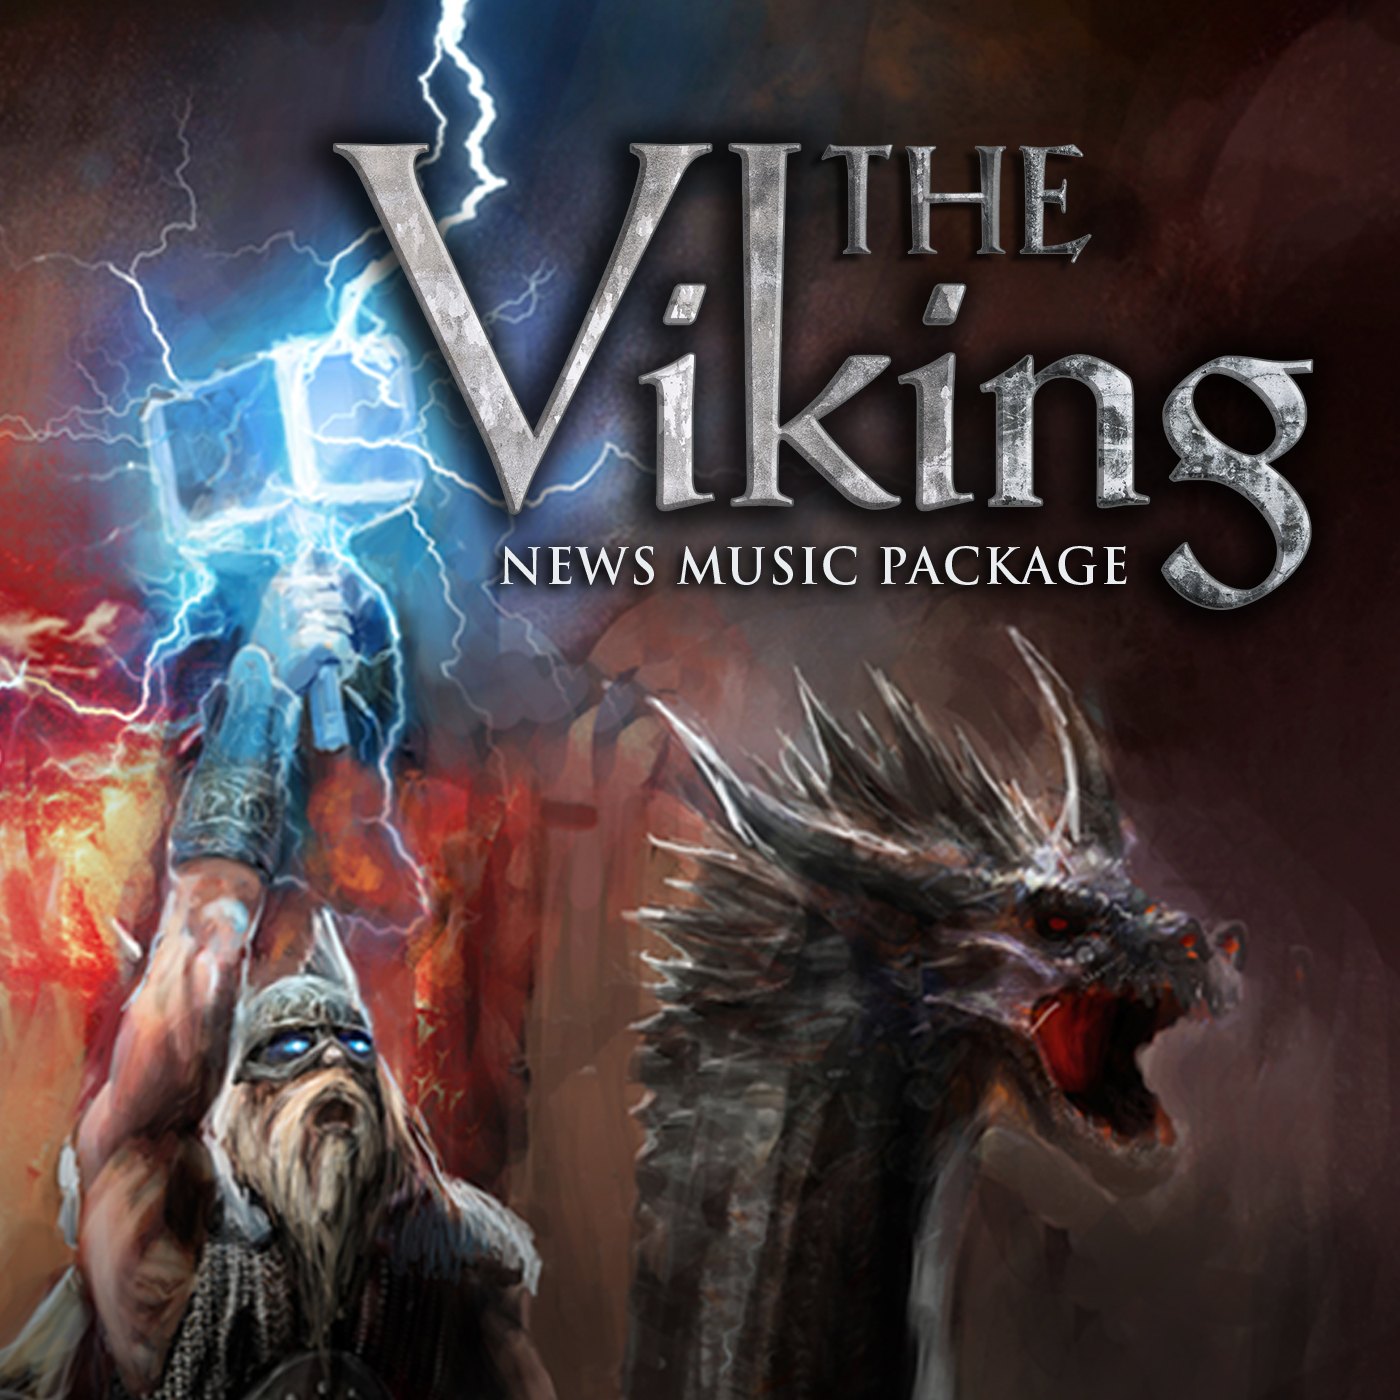 The Viking News Music Package